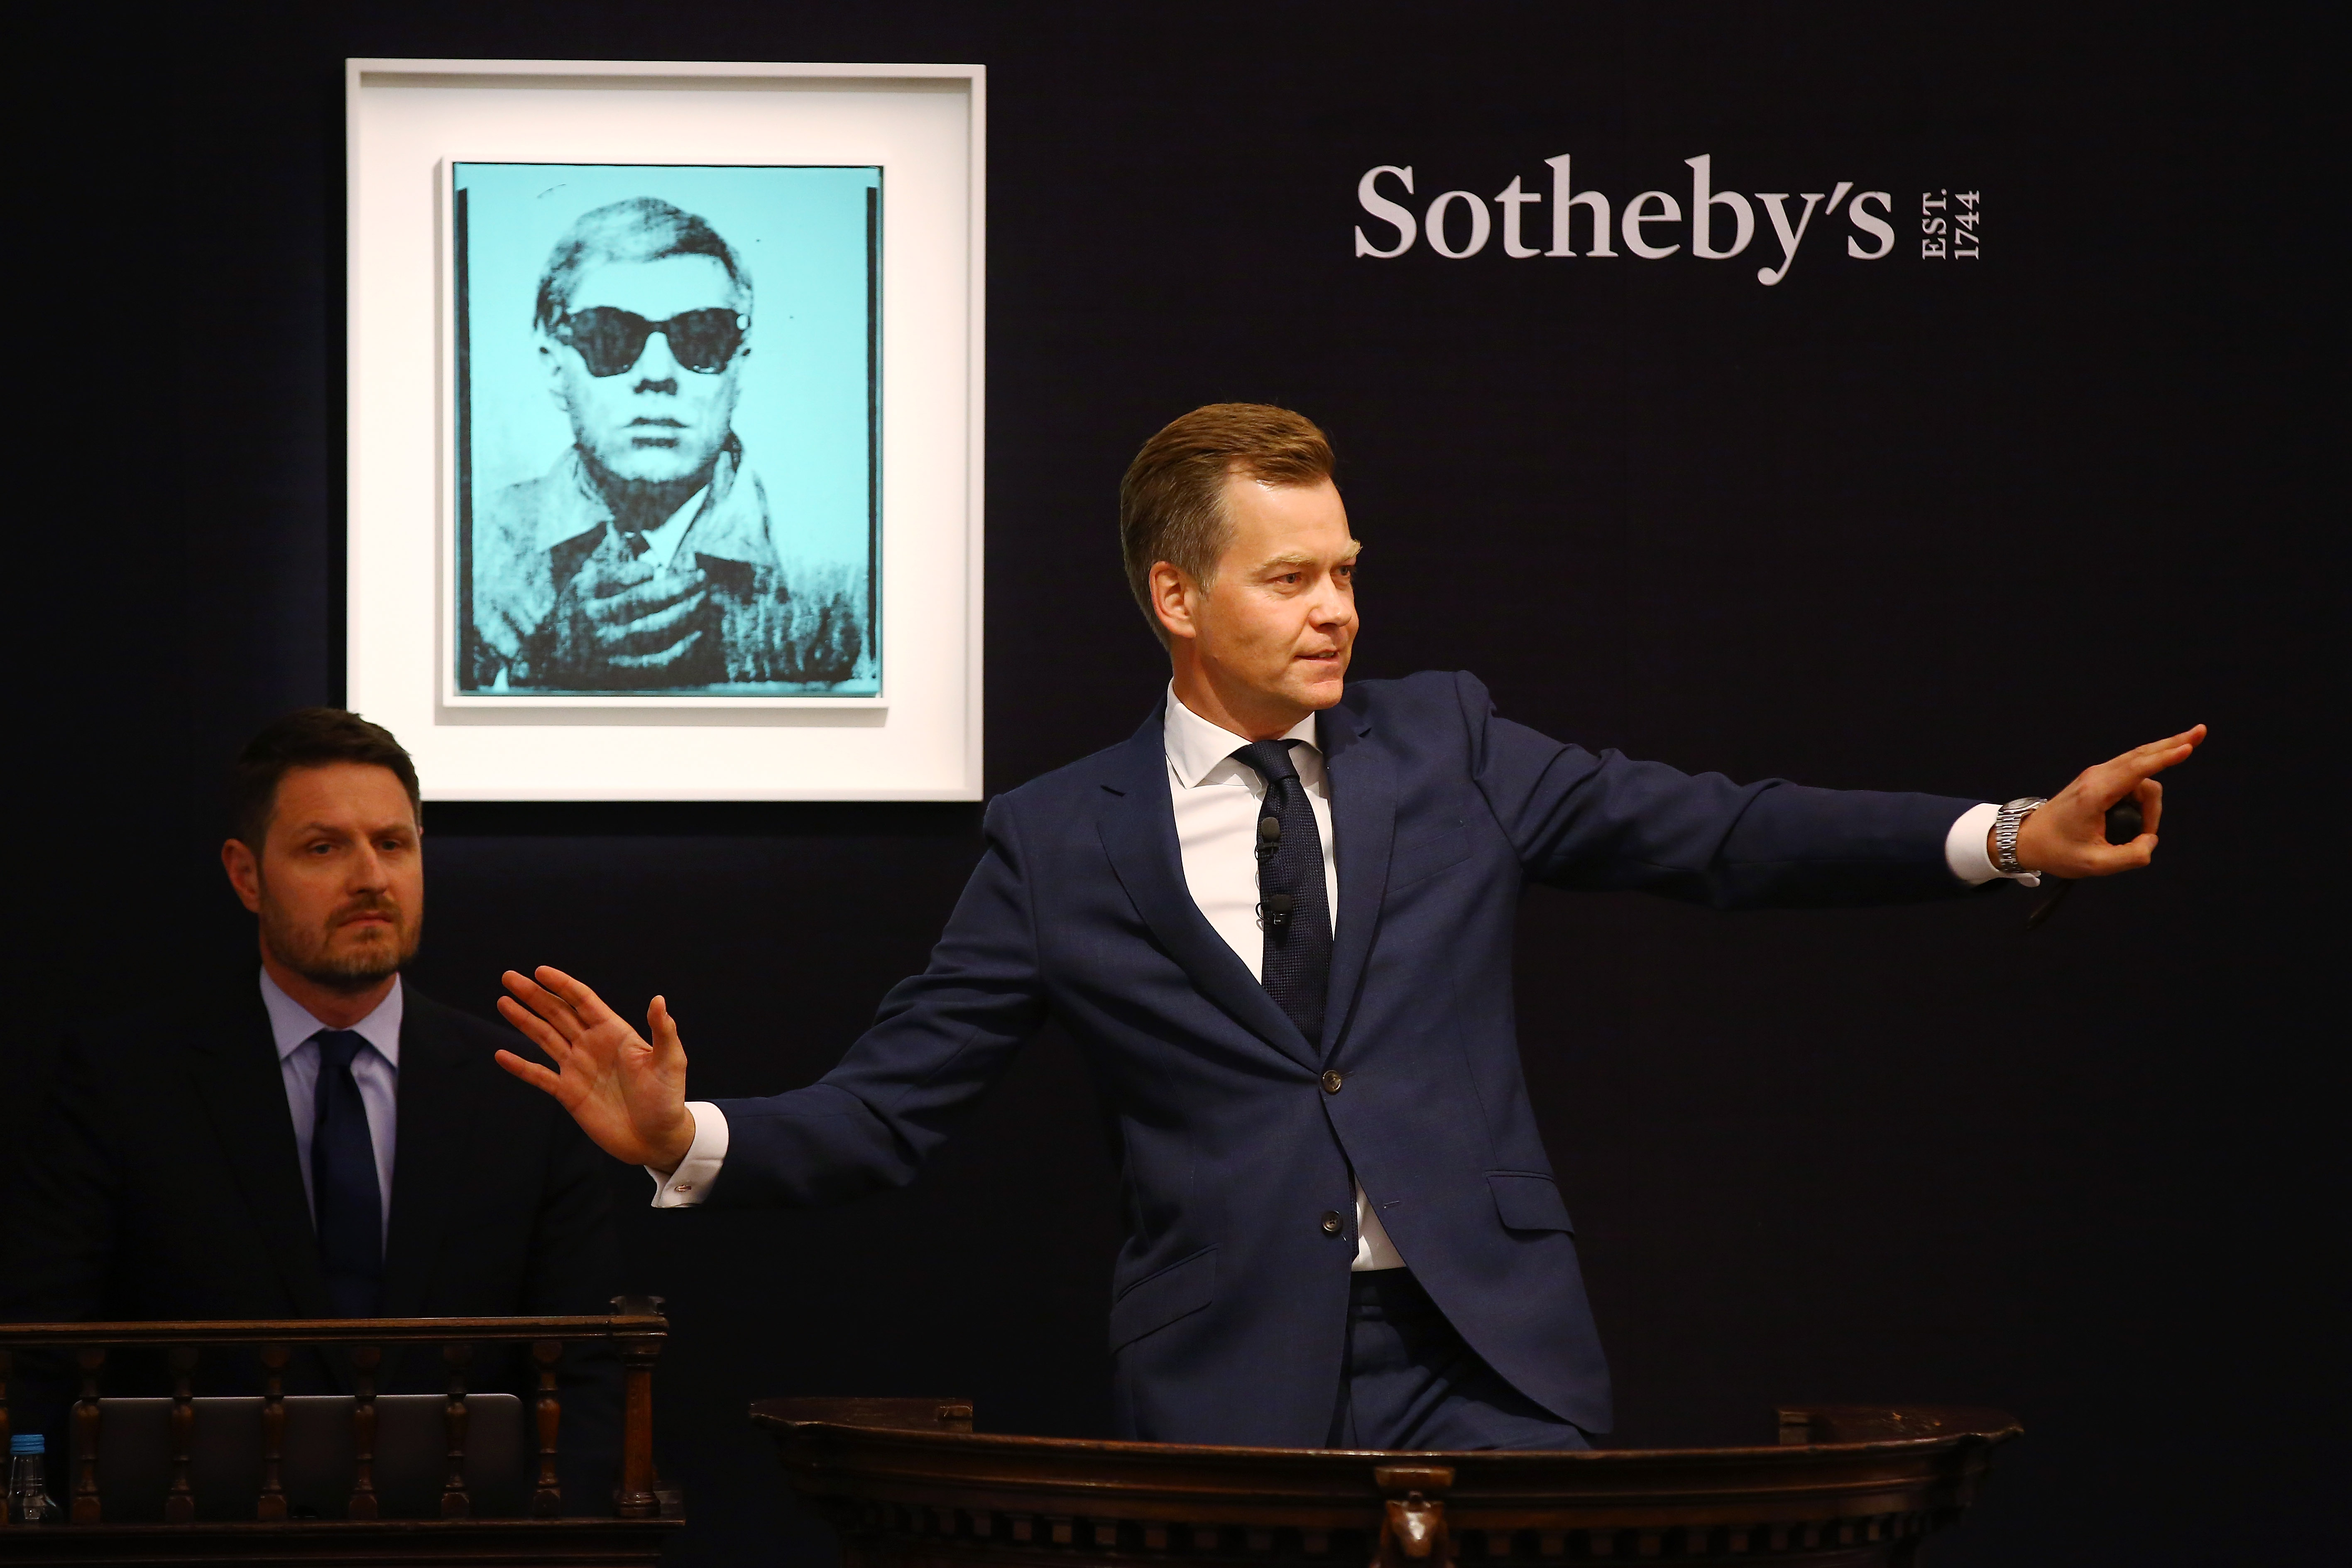 Image: Sotheby's